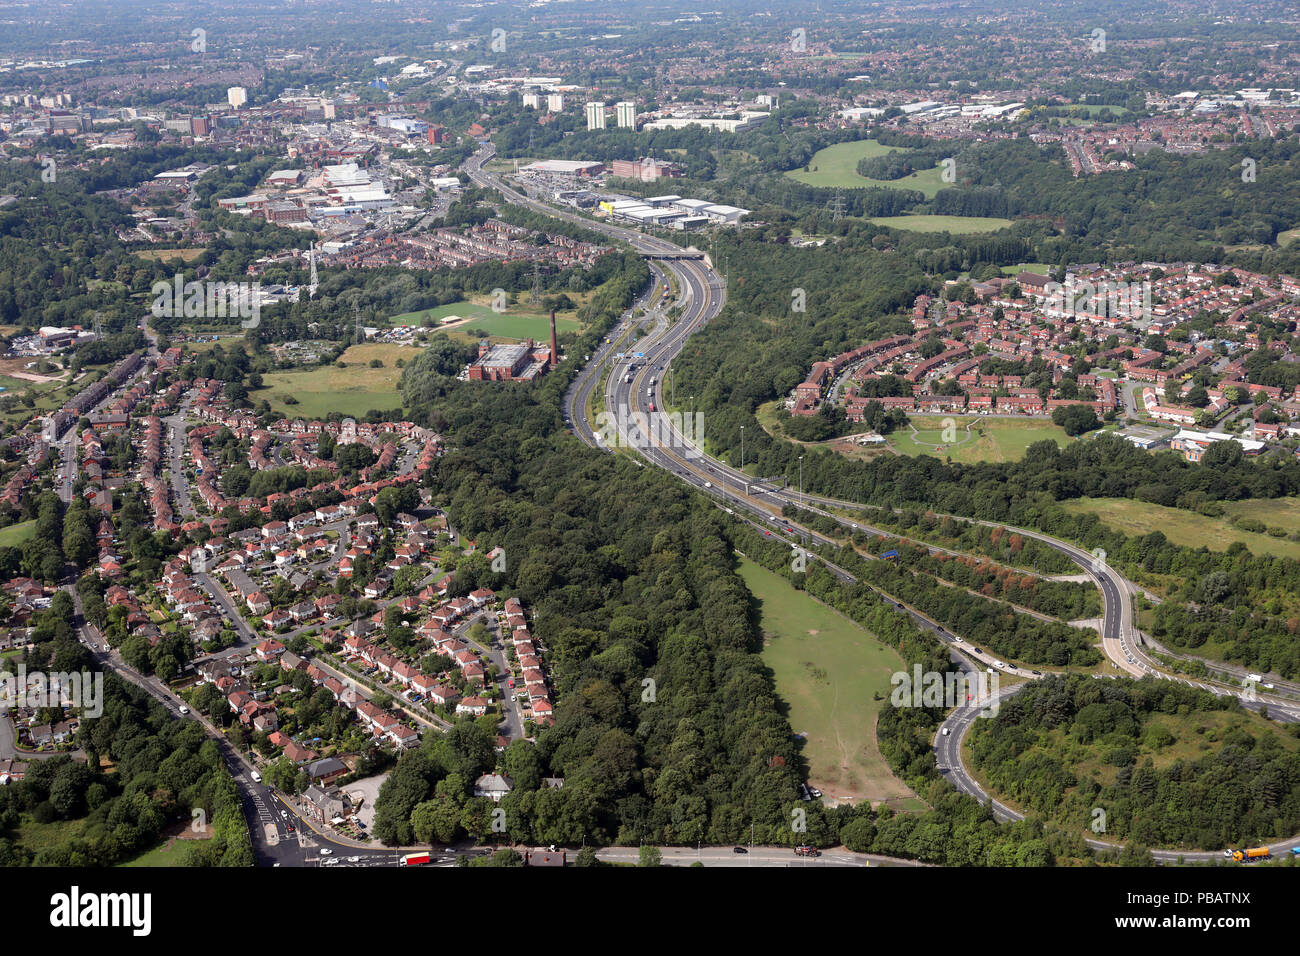 aerial view of junction 25 of the M60 motorway at Stockport, Manchester, UK - Stock Image